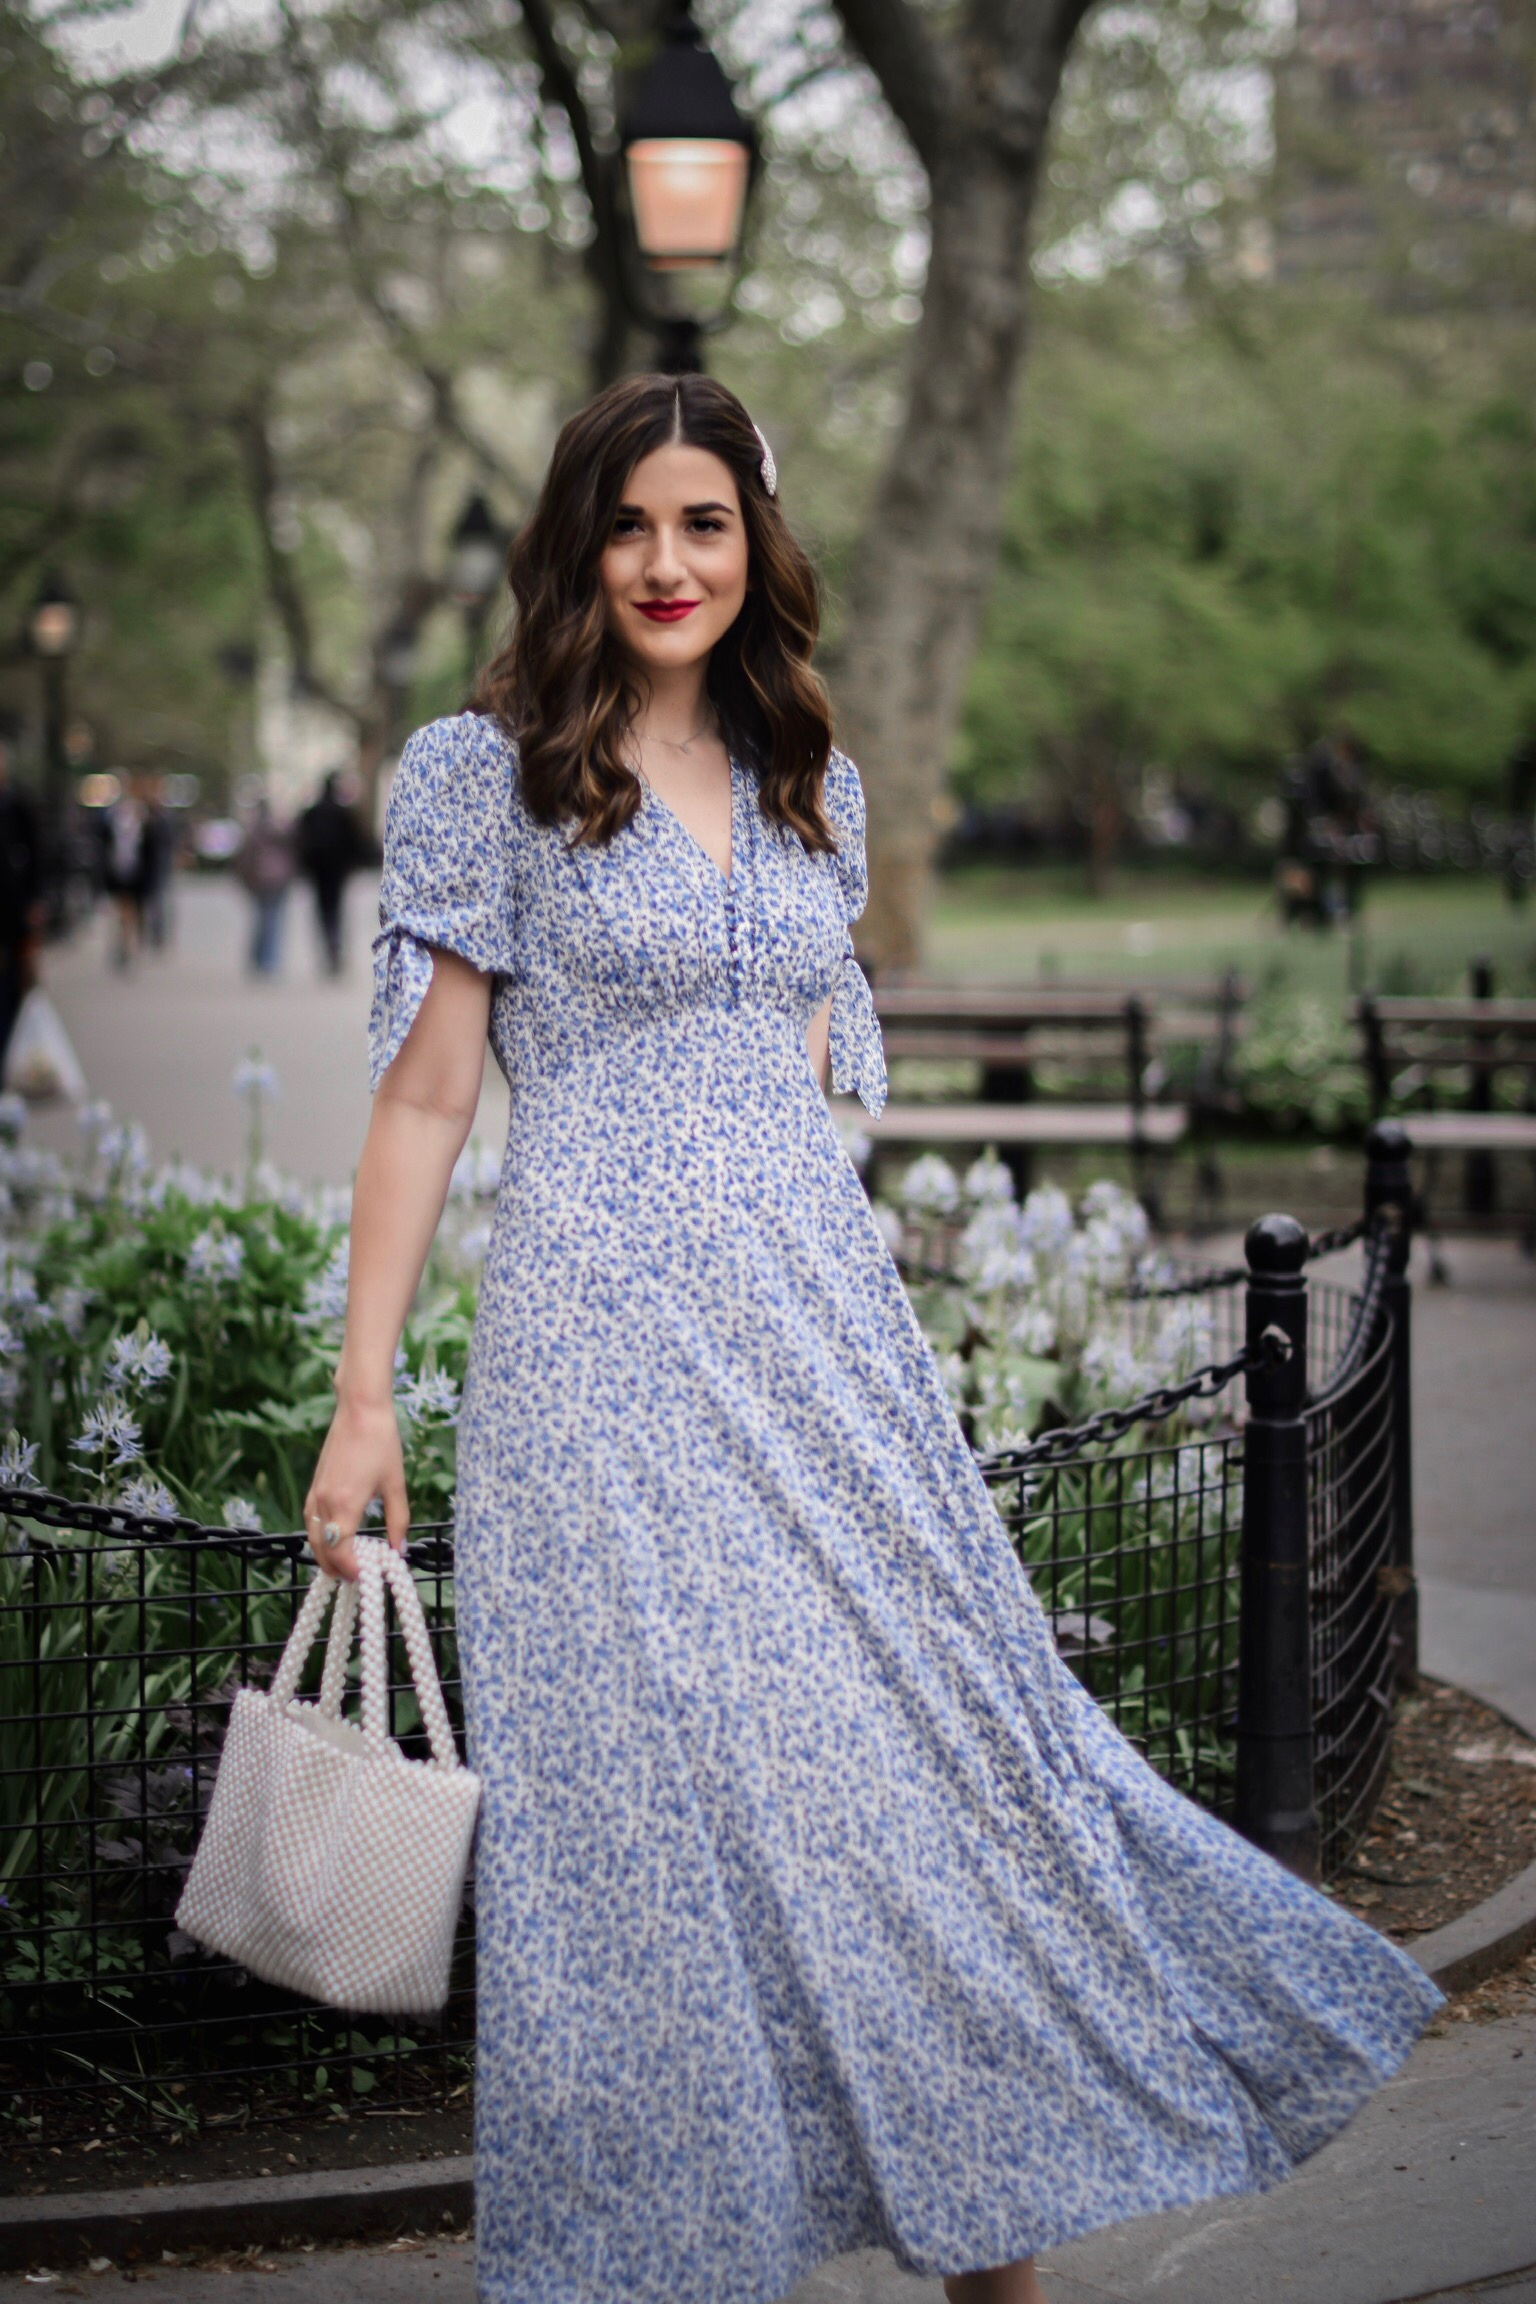 My Favorite Morning Rituals Esther Santer Fashion Blog NYC Street Style Blogger Outfit OOTD Trendy Shopping Girl What How To Wear Stitch Fix Gal Meets Glam Blue Floral Maxi Dress Hair Accesories Pearl Clip Hairsyle White Shoes Vince Camuto Sandals Bag.JPG